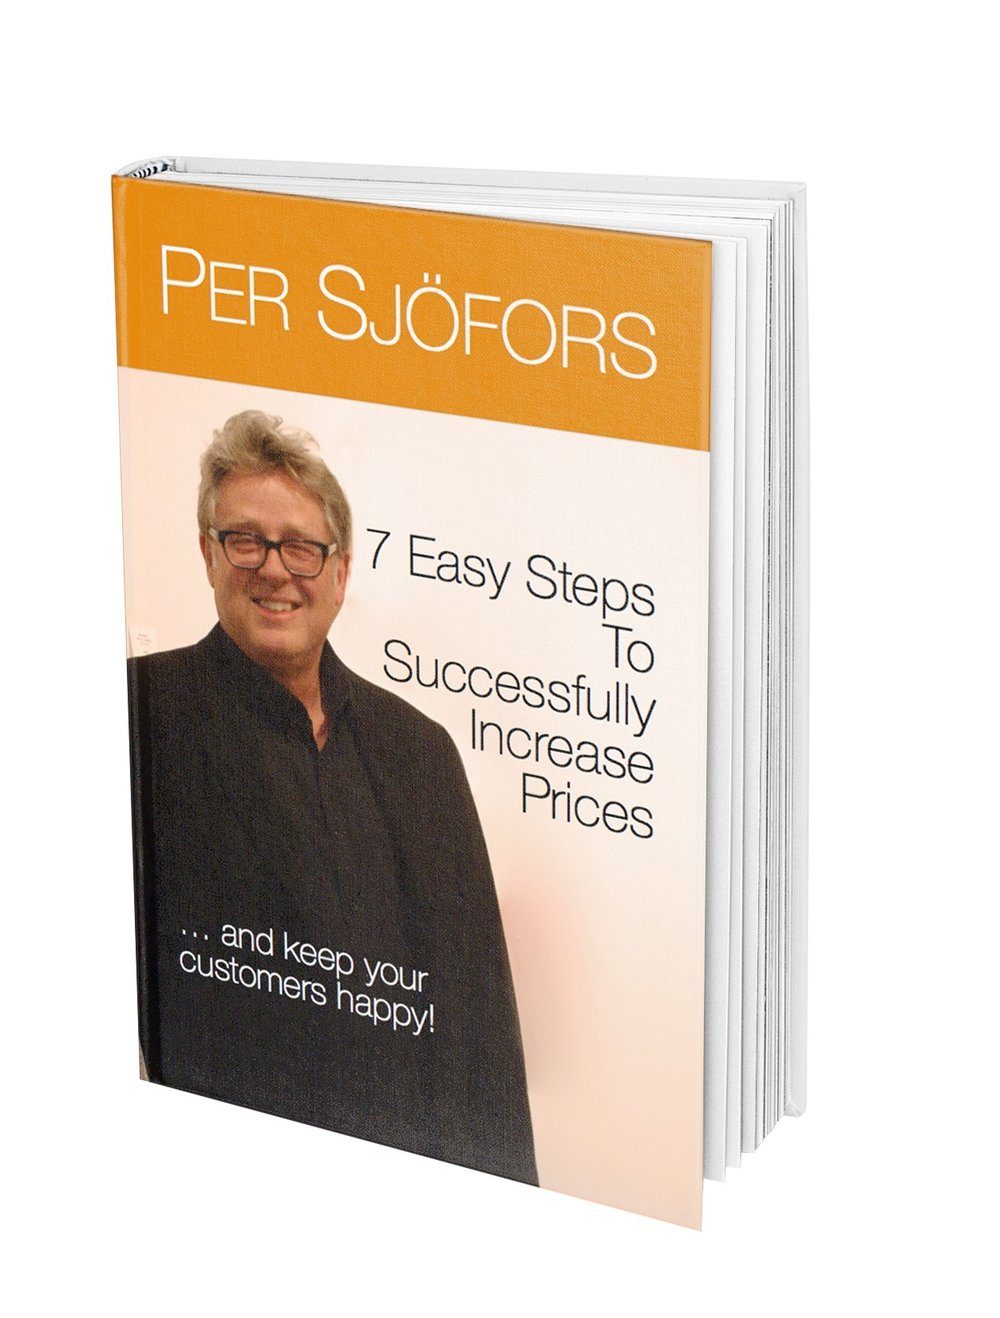 The author,  Per Sjofors is THE thought leader in pricing. Over the year hundreds of companies have taken his practical advice on how set prices right, and how to successfully increase prices,  adding billions of dollars to their bottom line. Per is also a sought-after speaker at conferences and corporate events, and he teaches the right way to price at local universities.